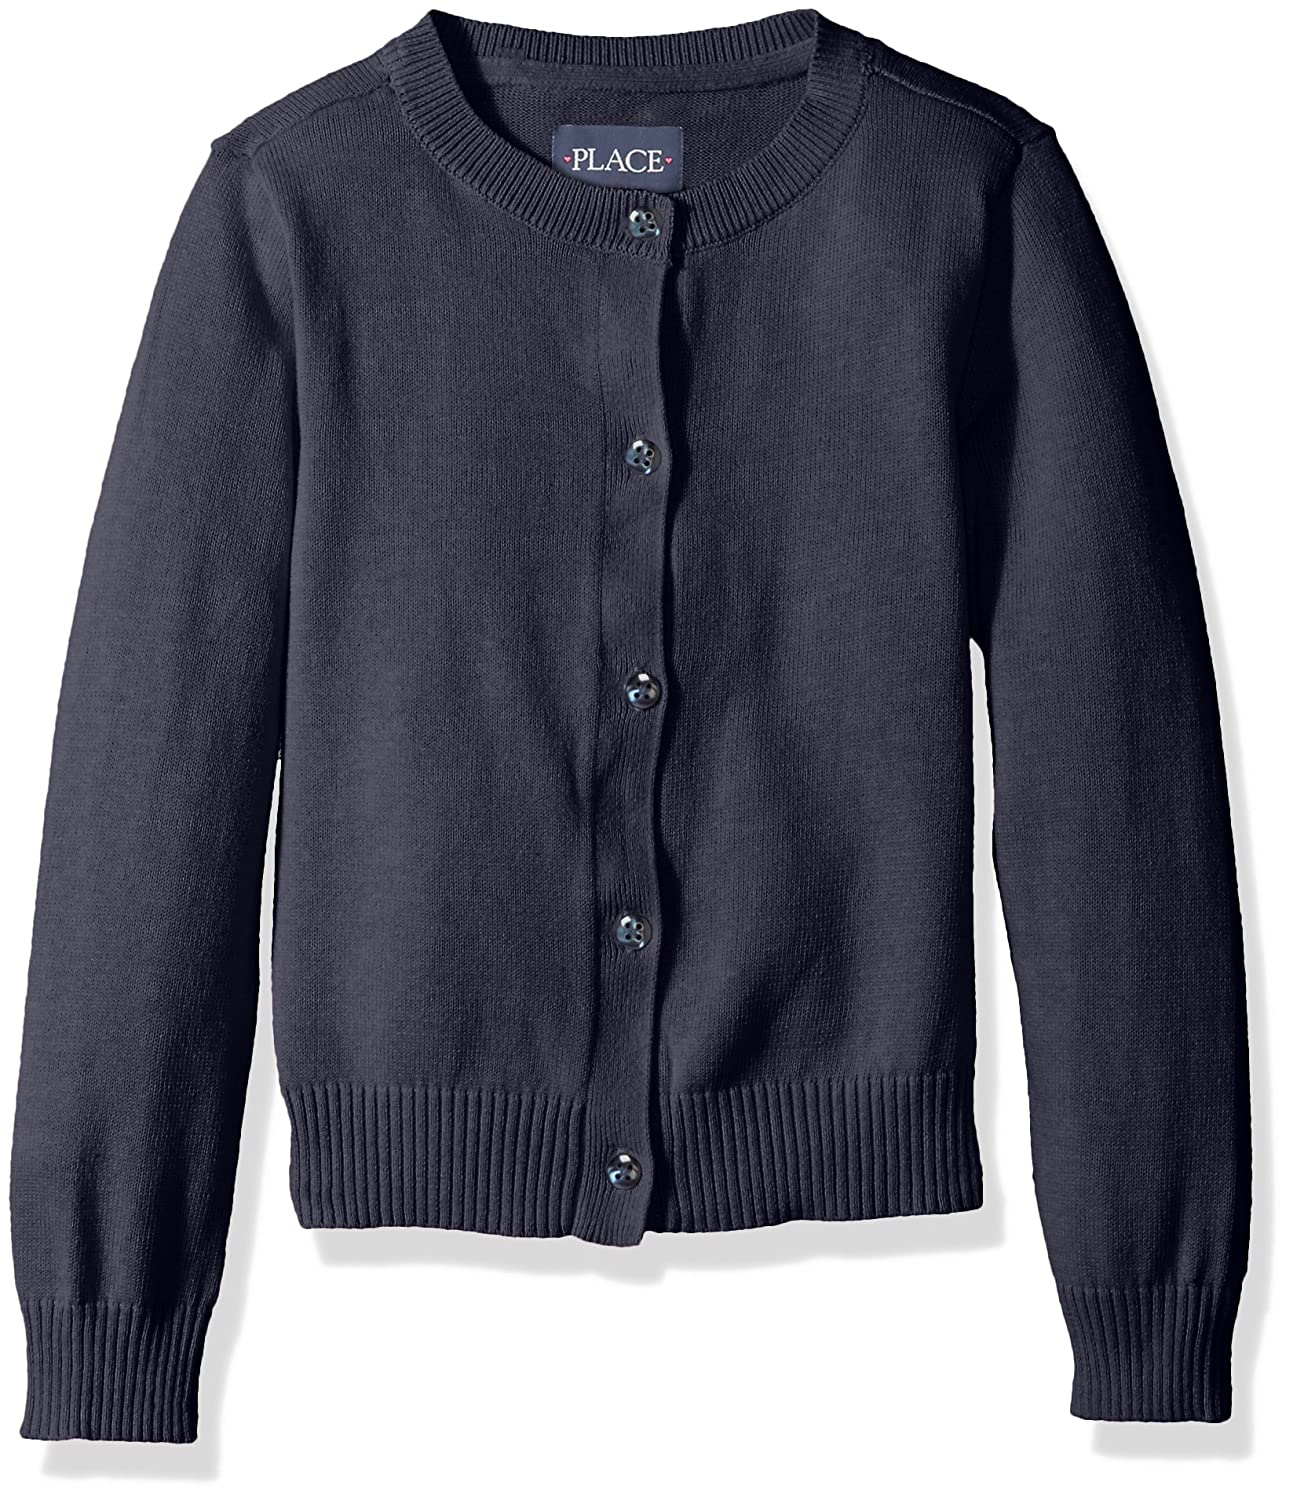 The Children's Place Girls' Uniform Cardigan Sweater 2066589